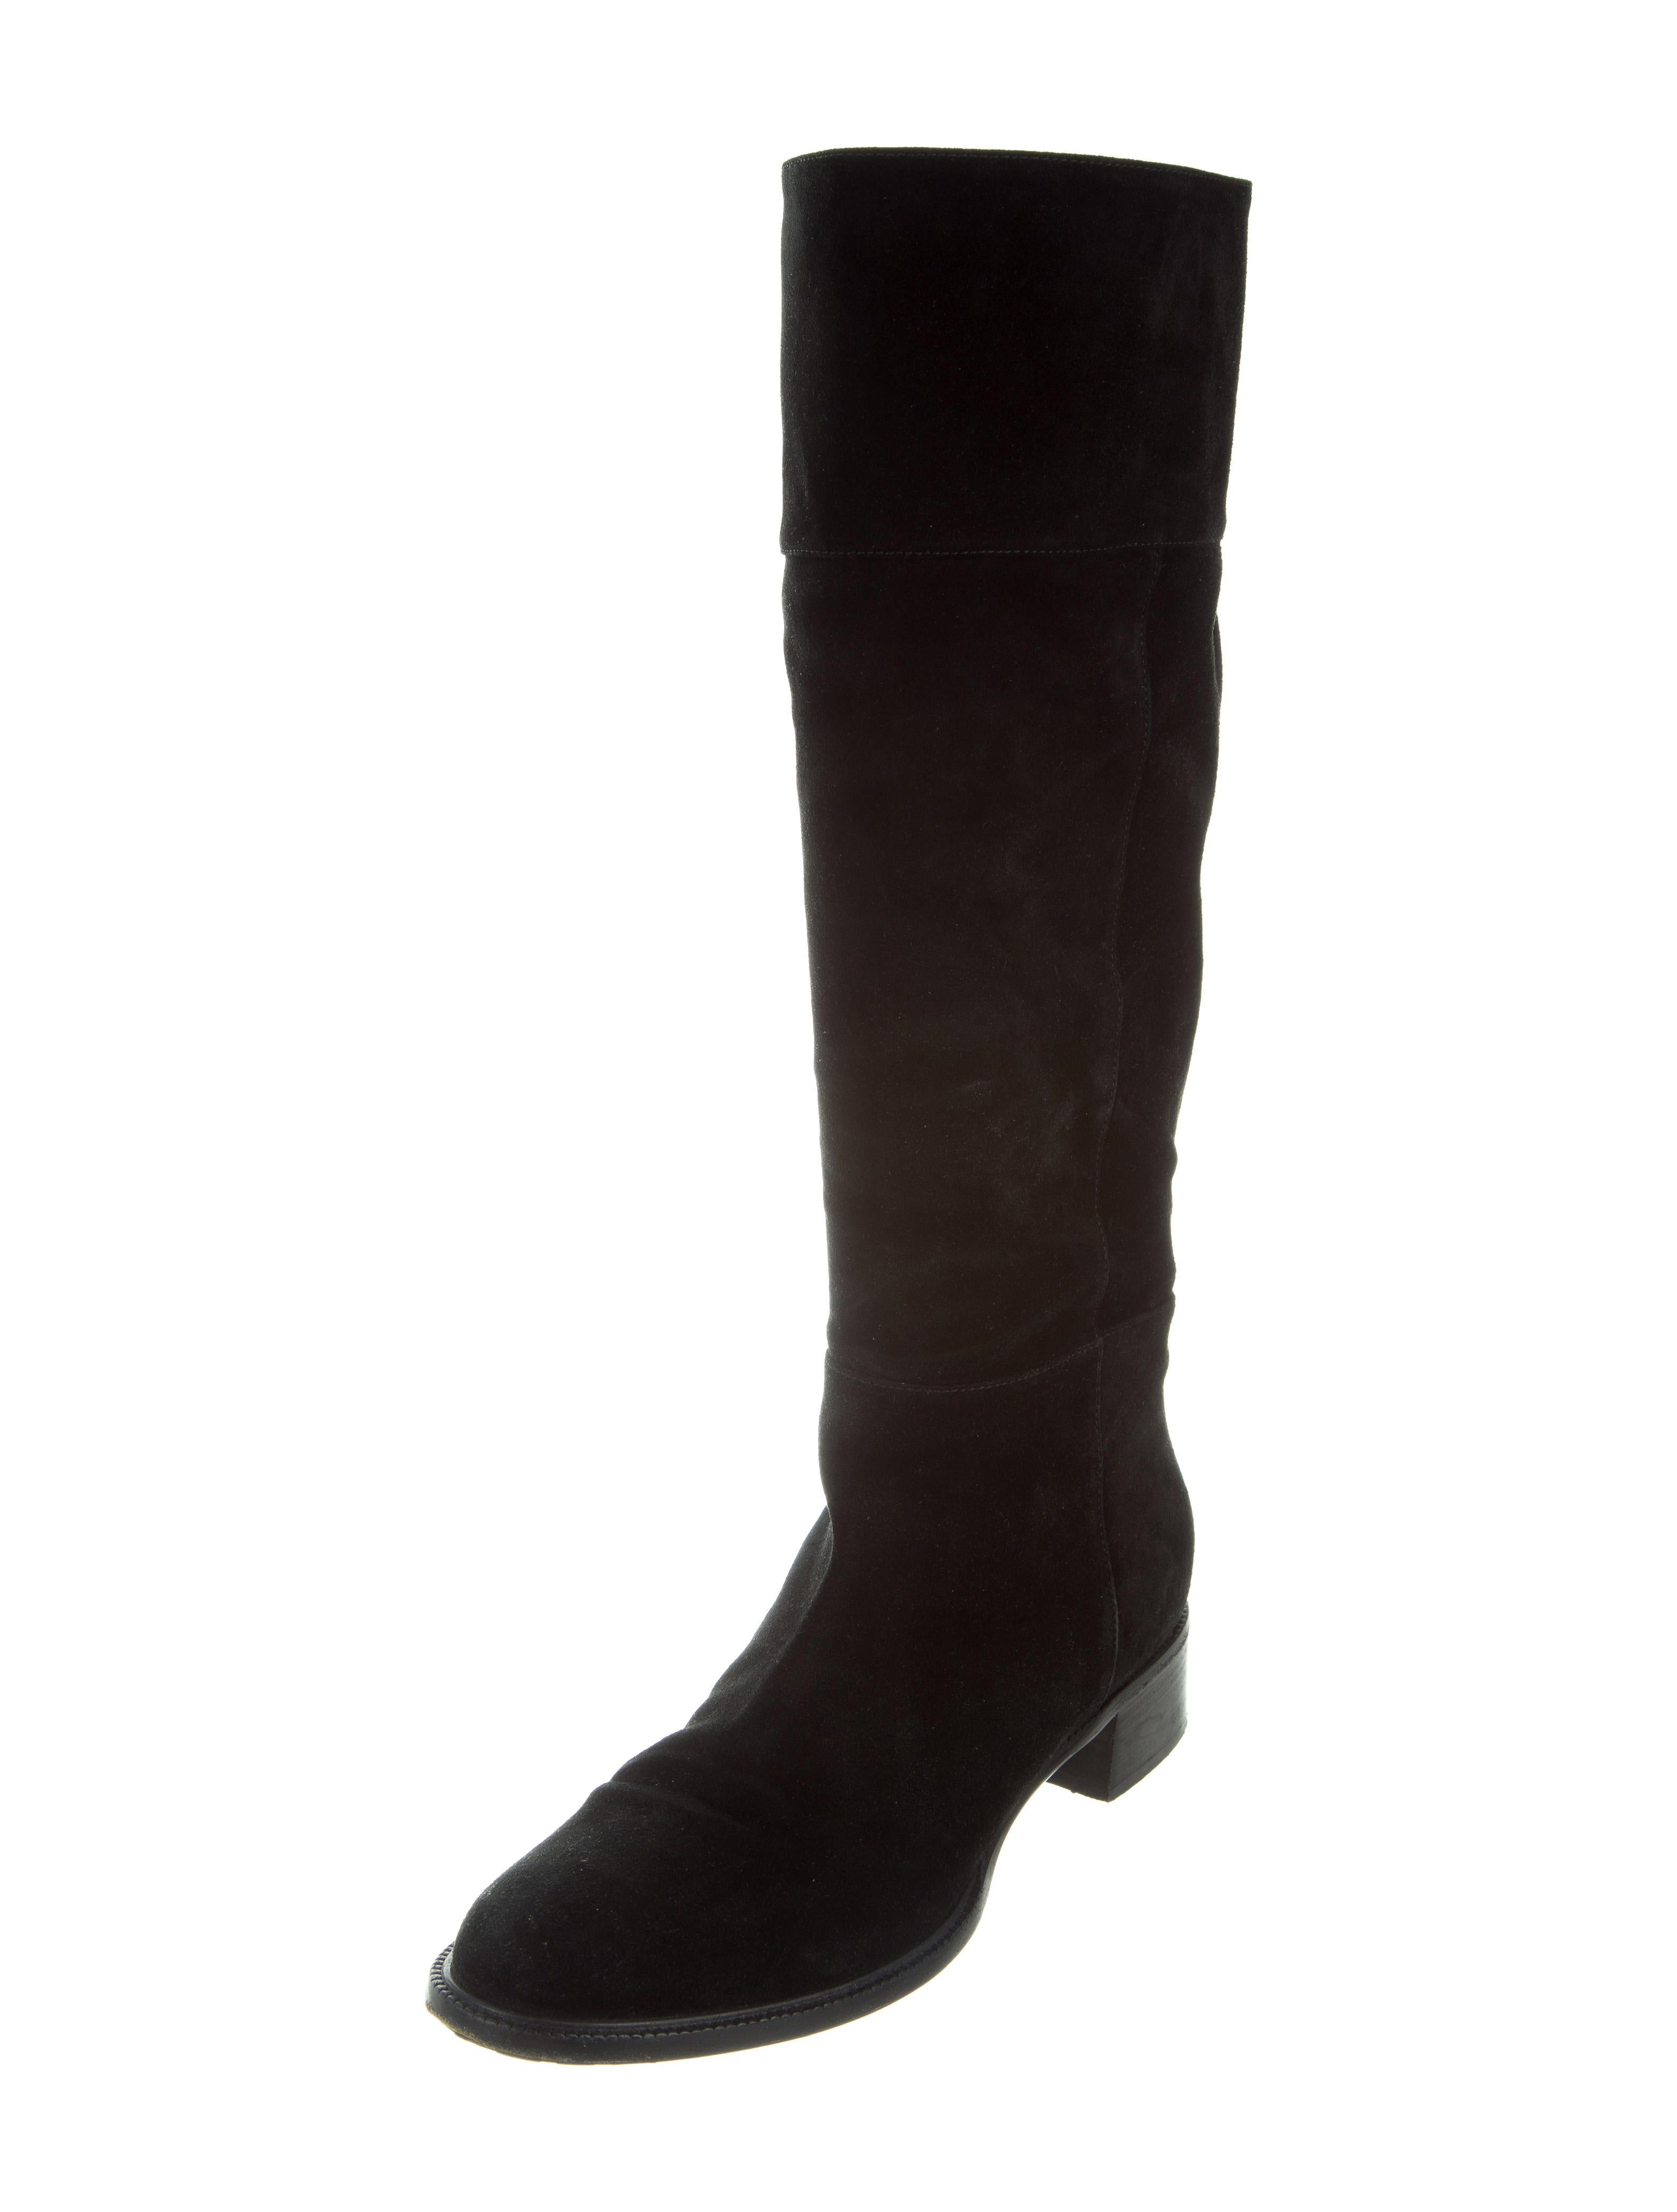 casadei suede knee high boots shoes cei23186 the